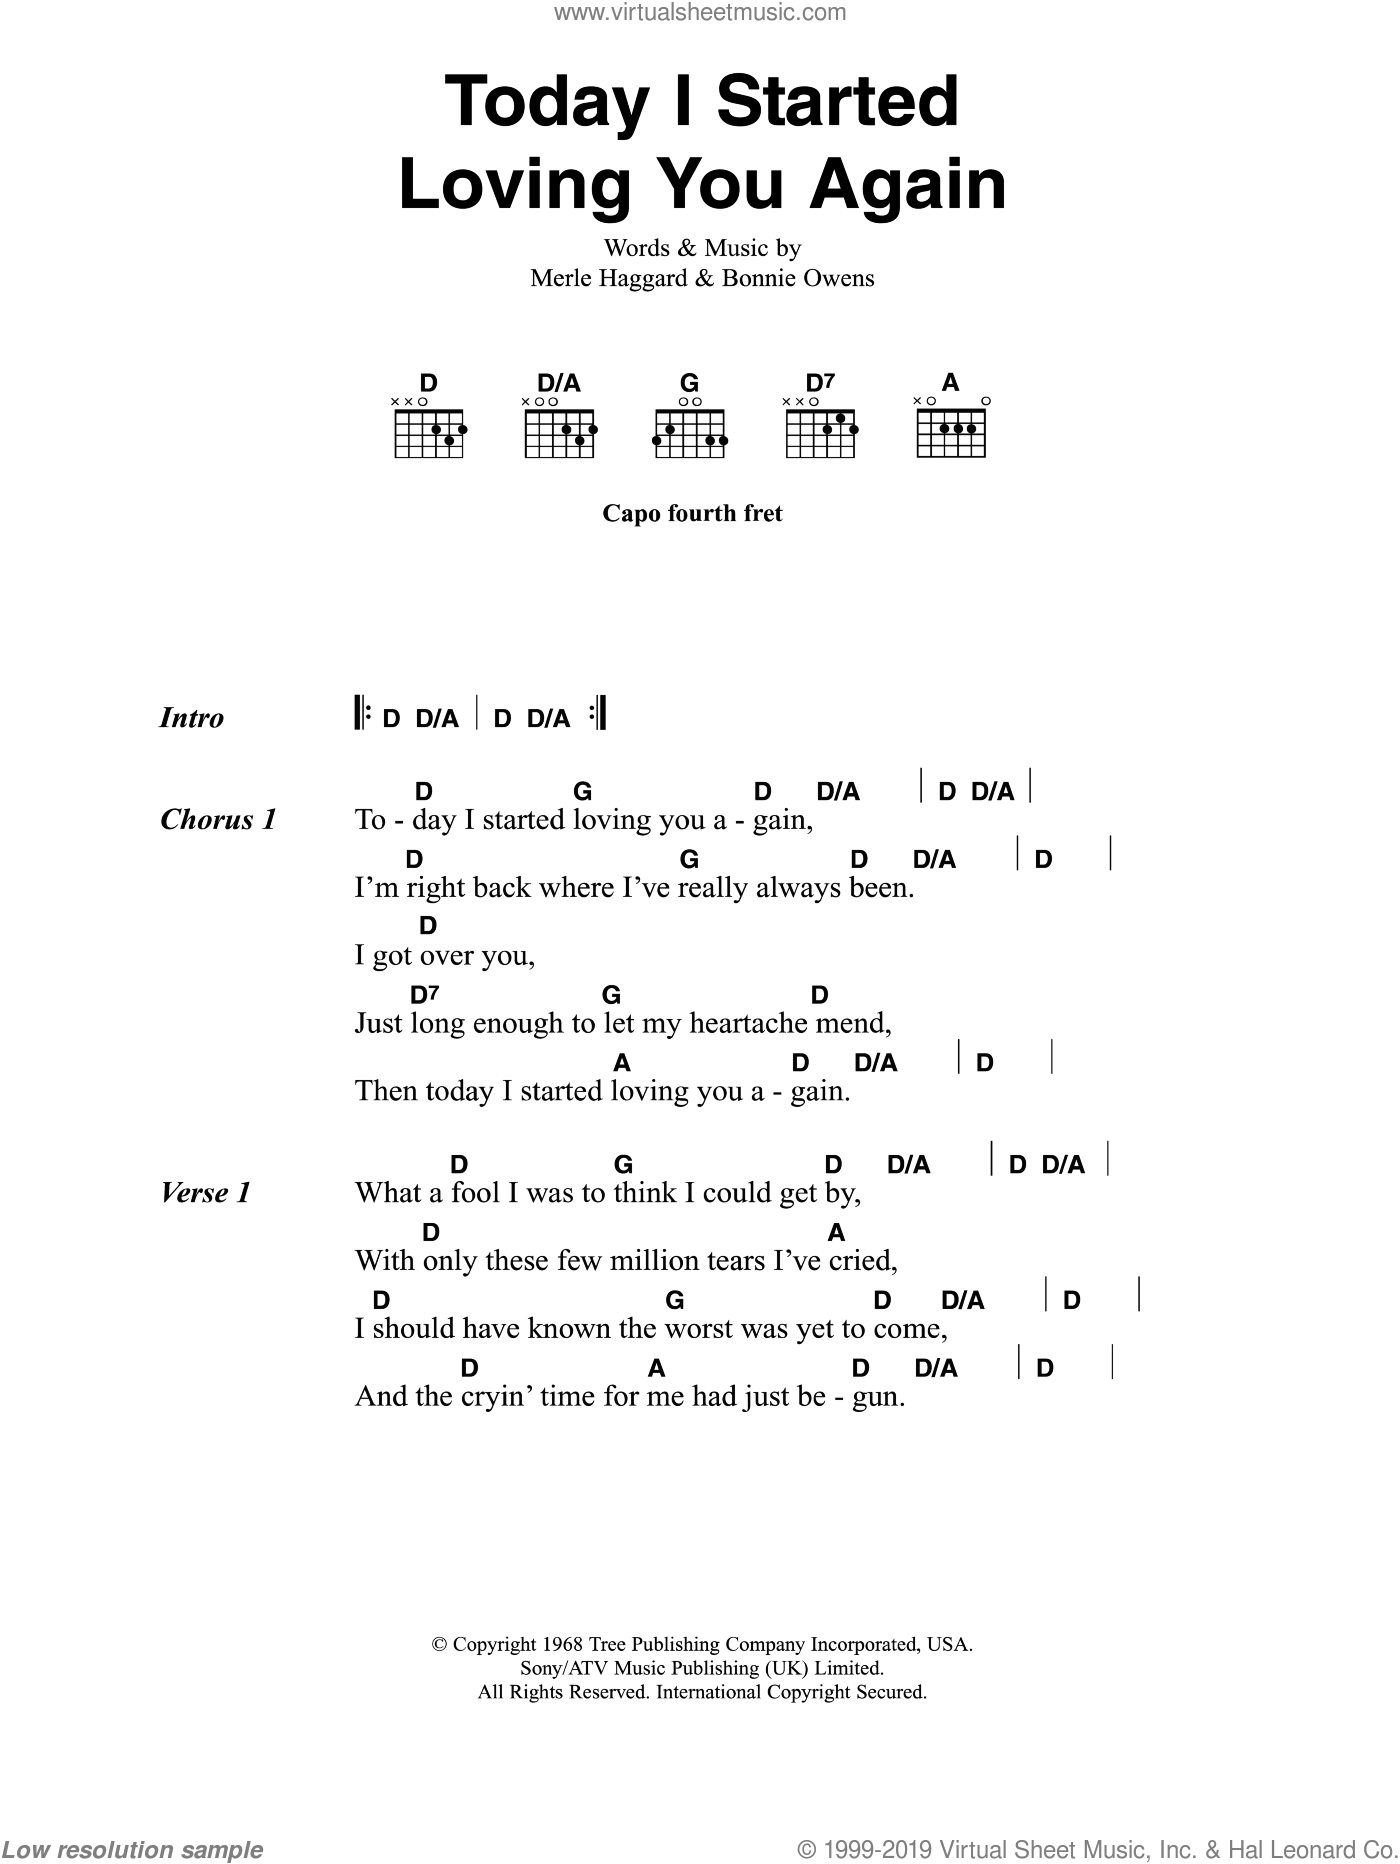 Today I Started Loving You Again sheet music for guitar (chords, lyrics, melody) by Bonnie Owens